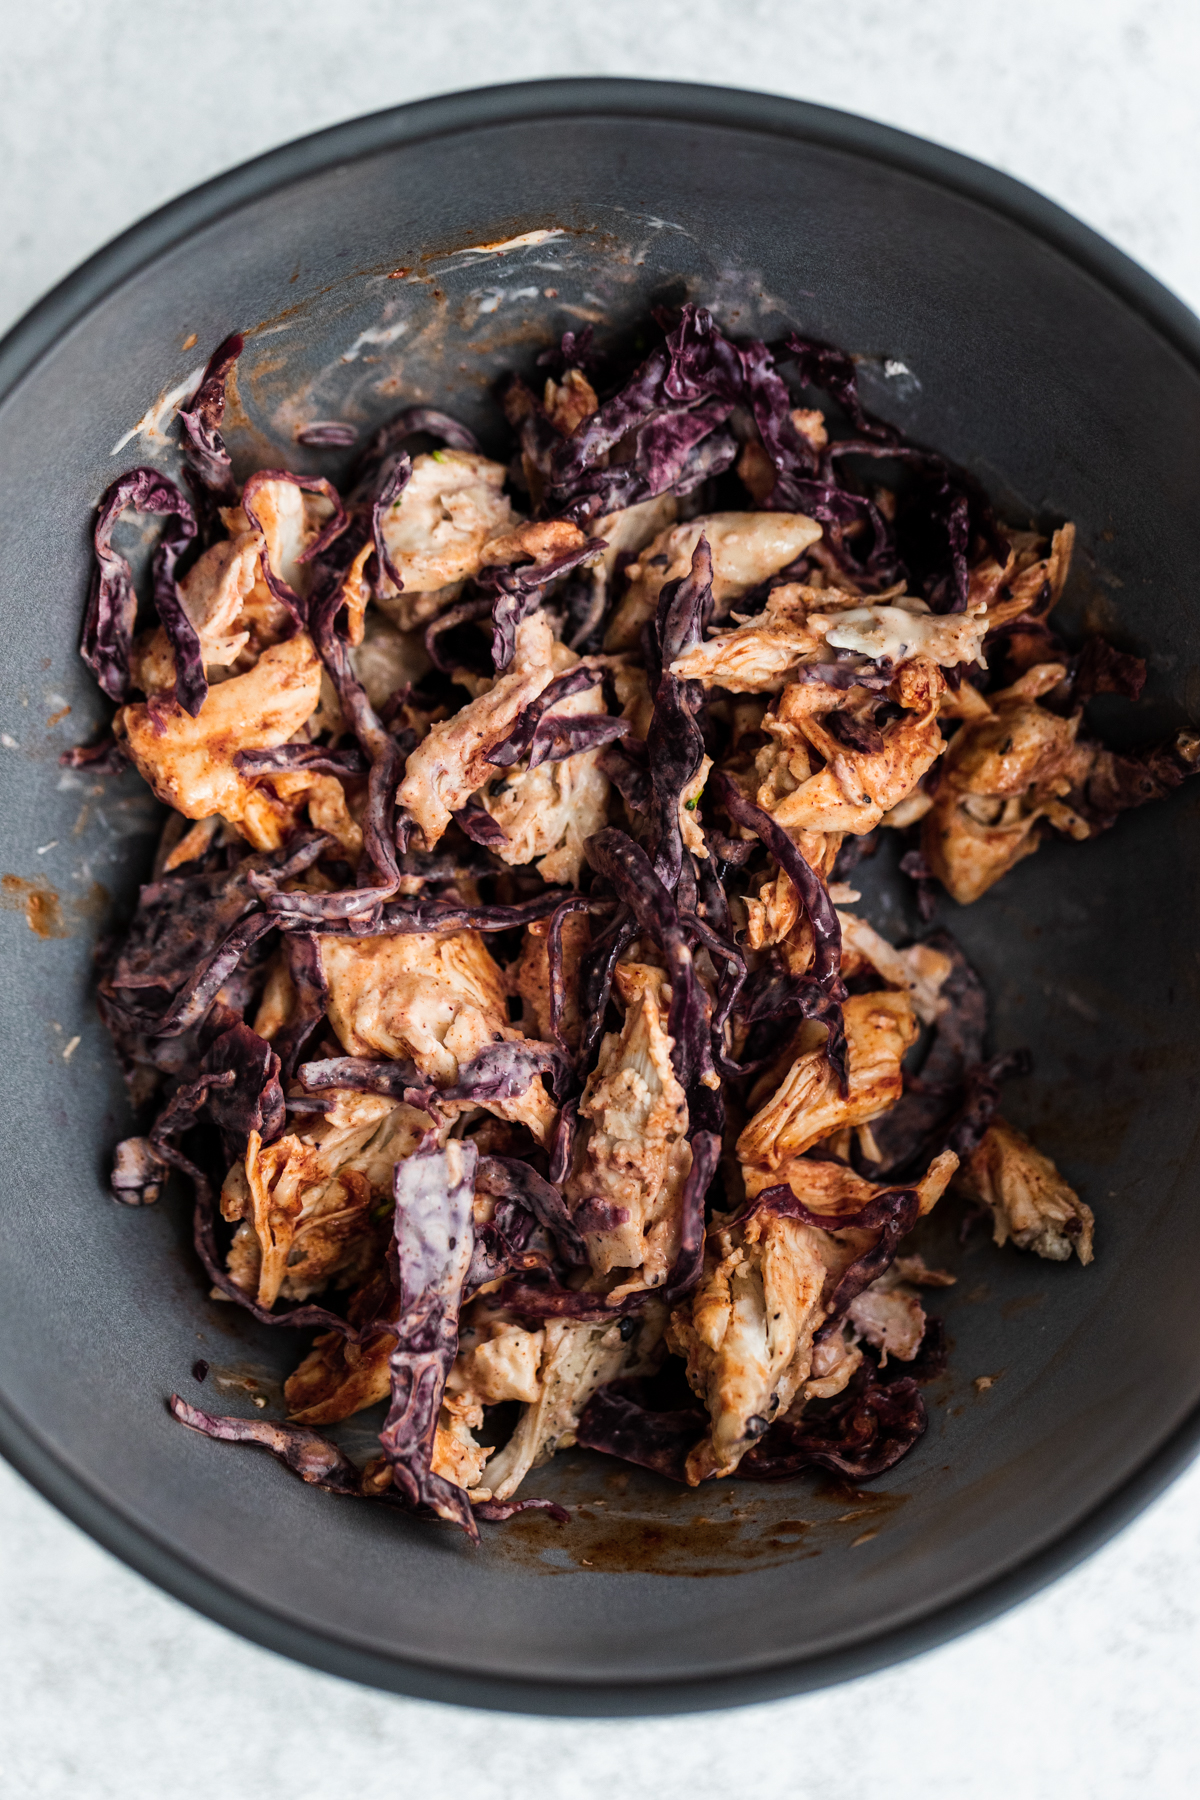 Overhead shot of shredded chicken, red cabbage sauerkraut and hot sauce mayo in a bowl.